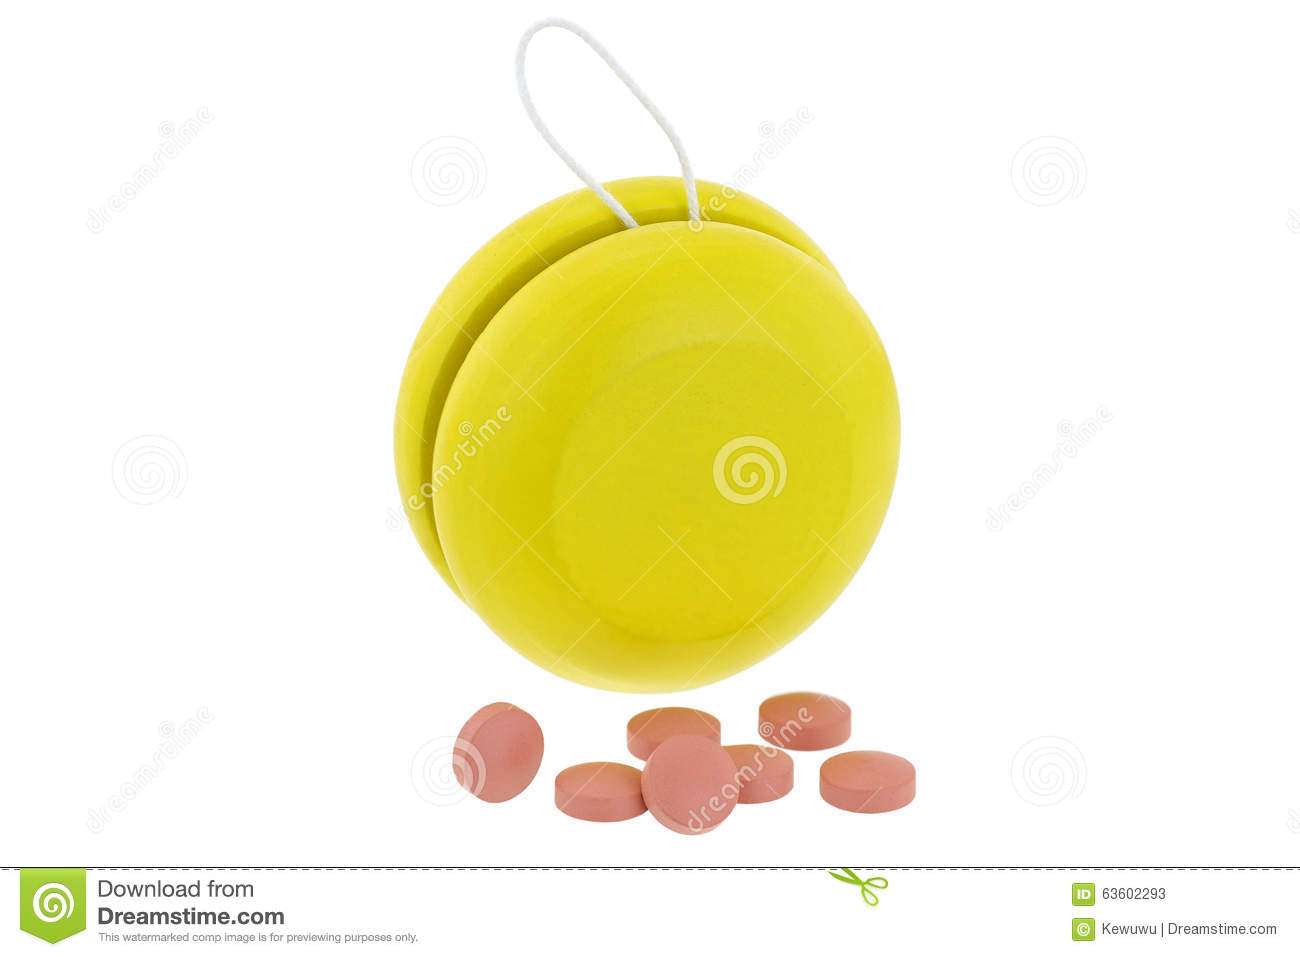 Yellow YoYo next to pink medicines